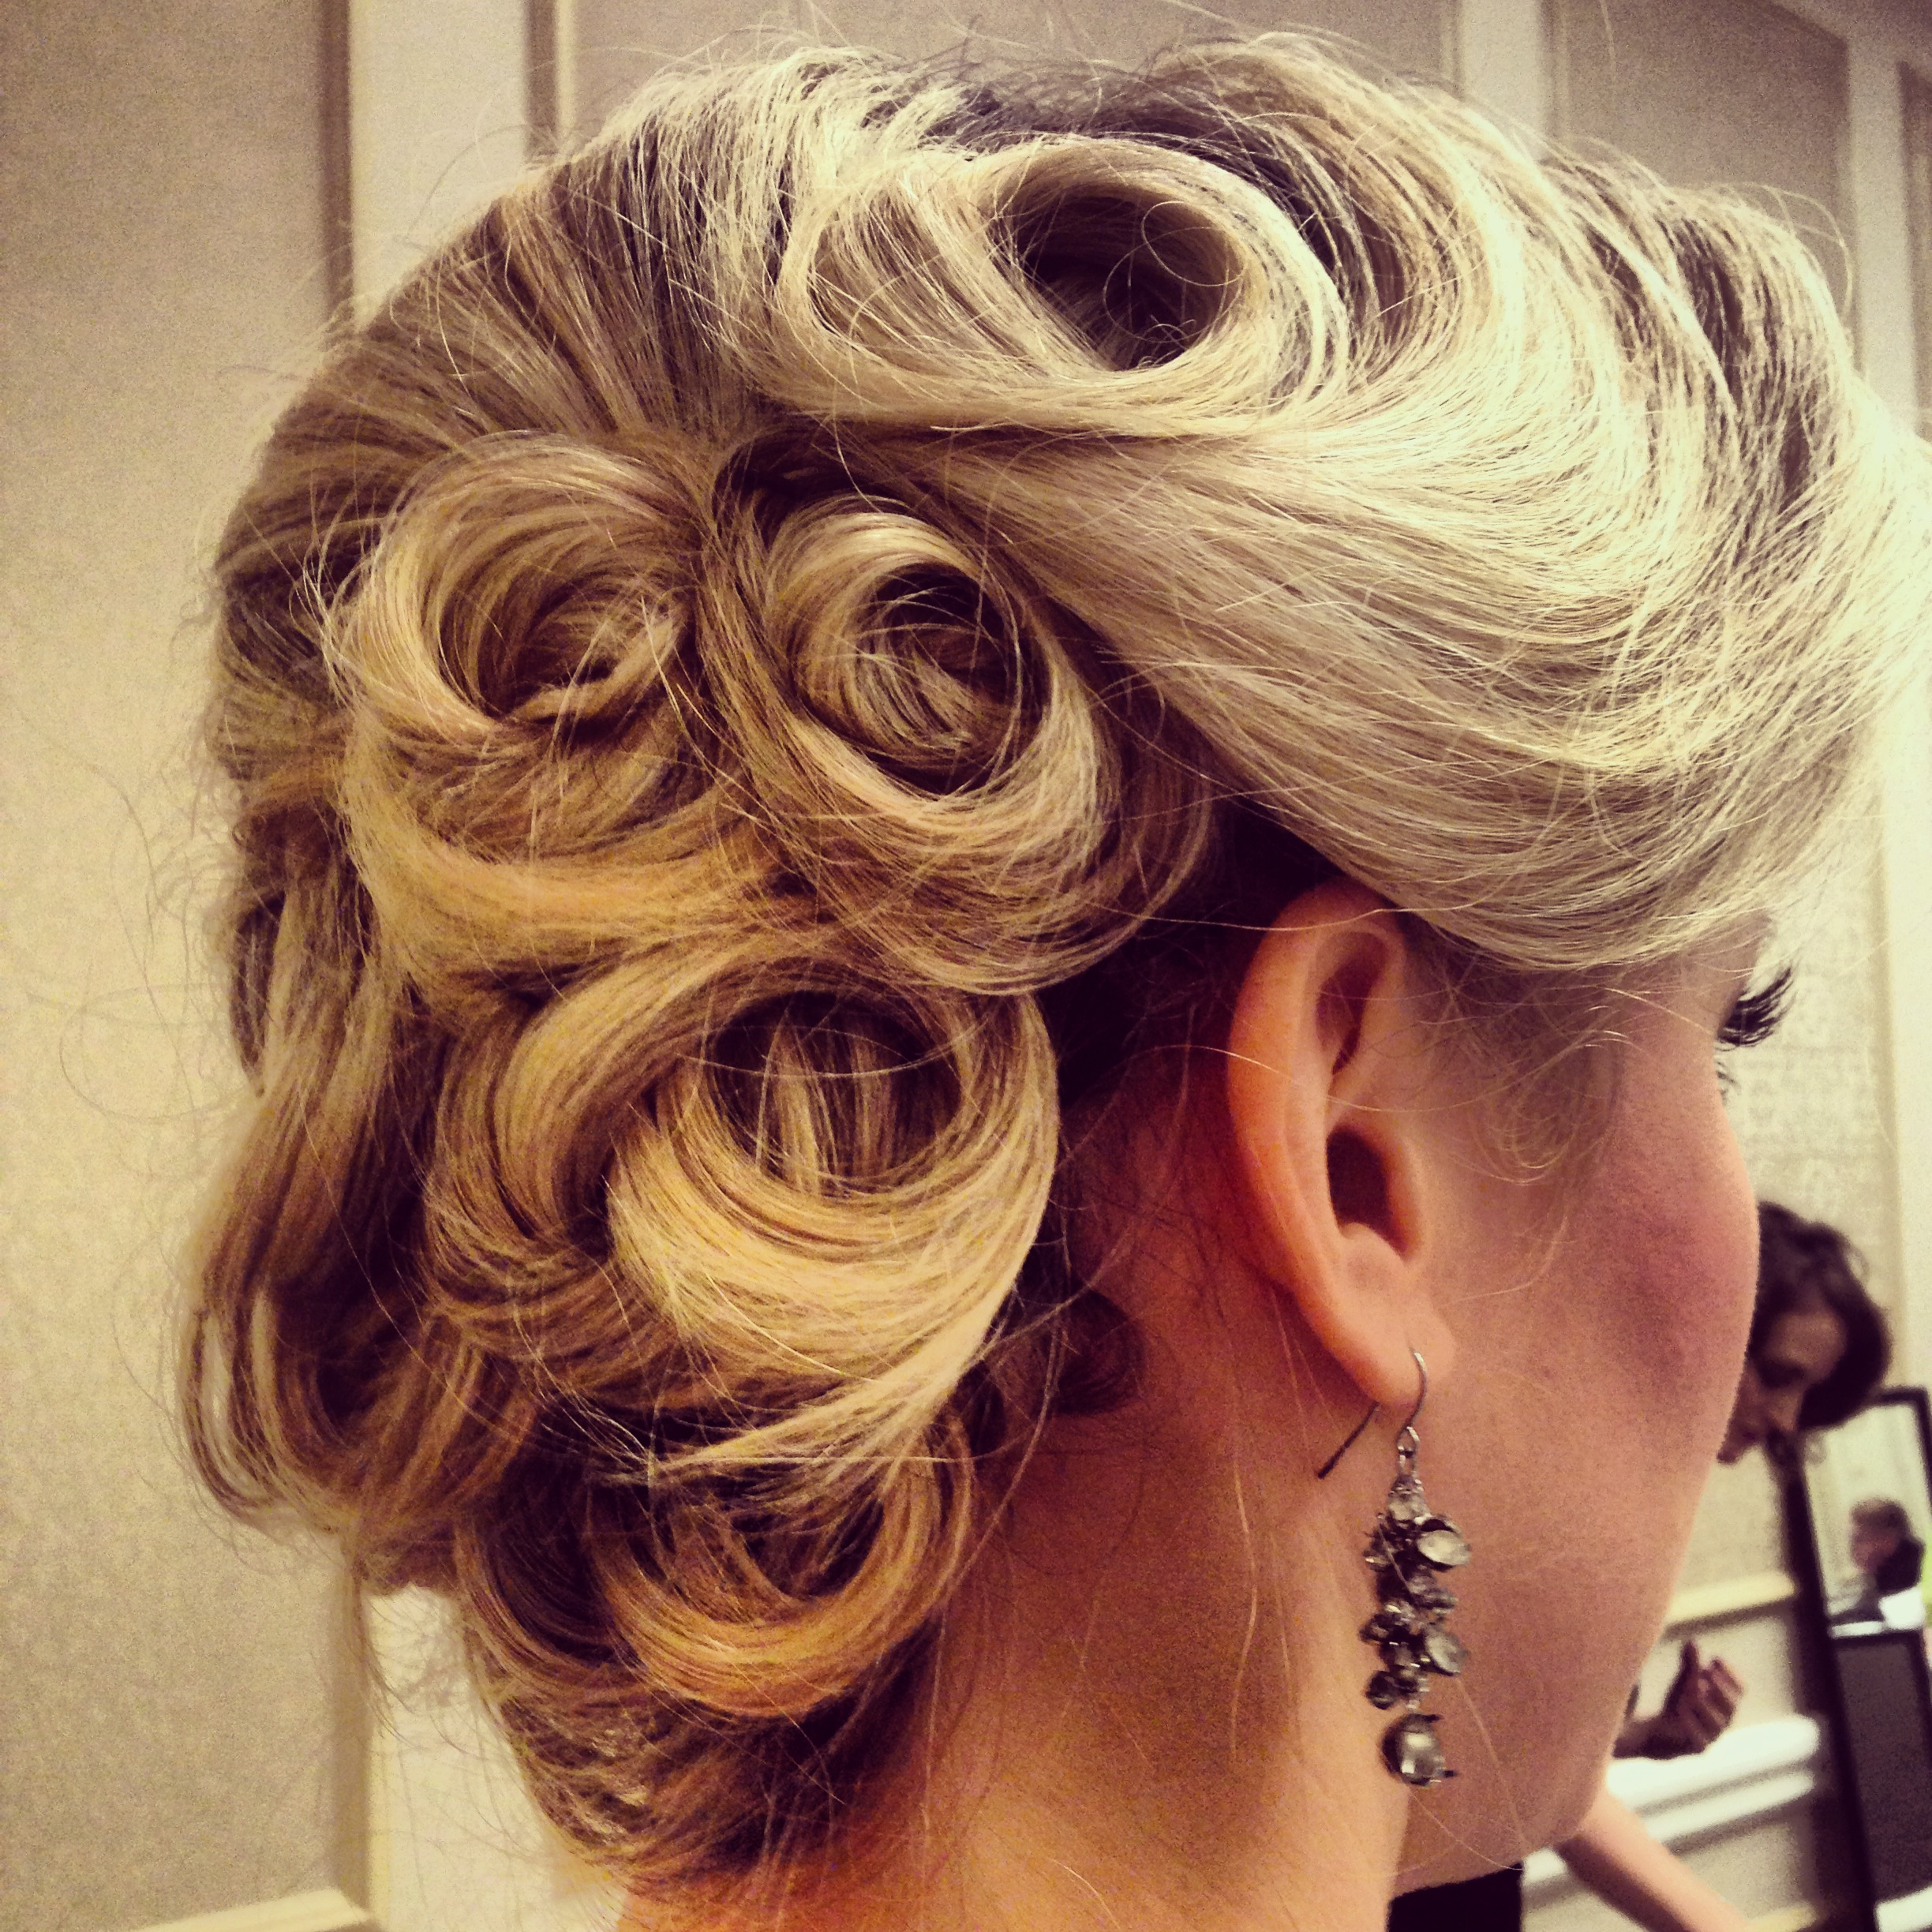 Just Some Great 1940s Hair